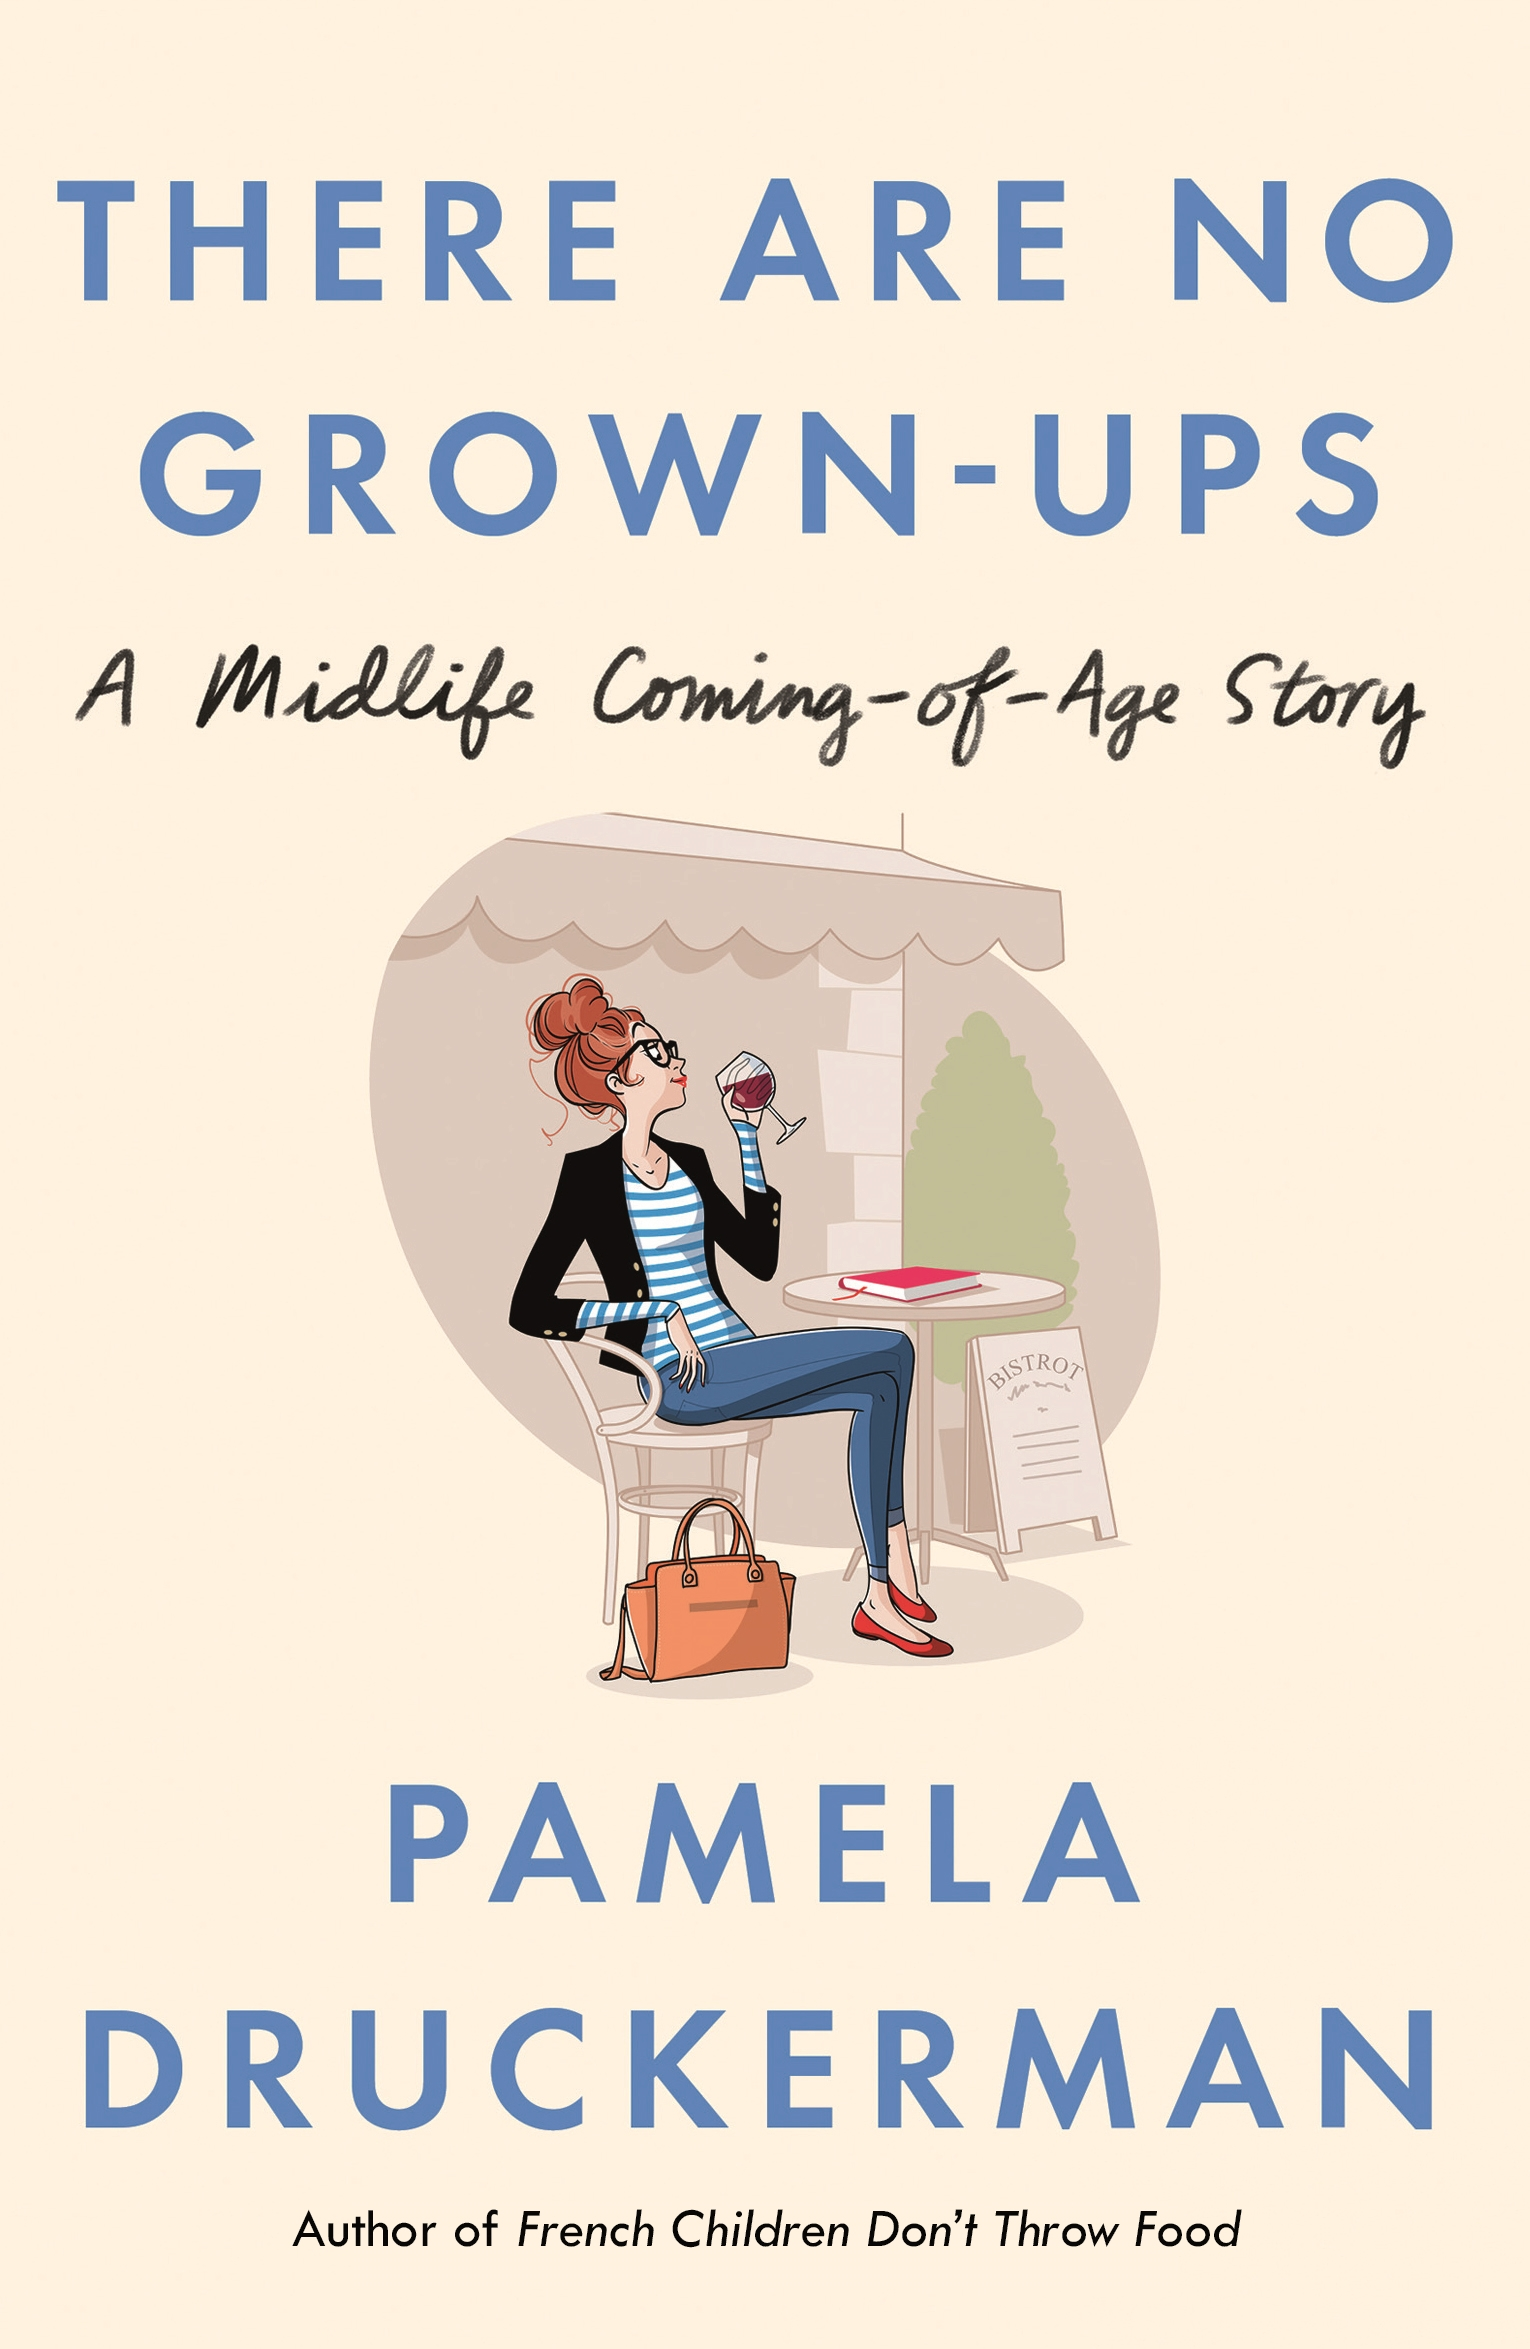 There Are No Grown-ups by Pamela Druckerman, ISBN: 9780857522955